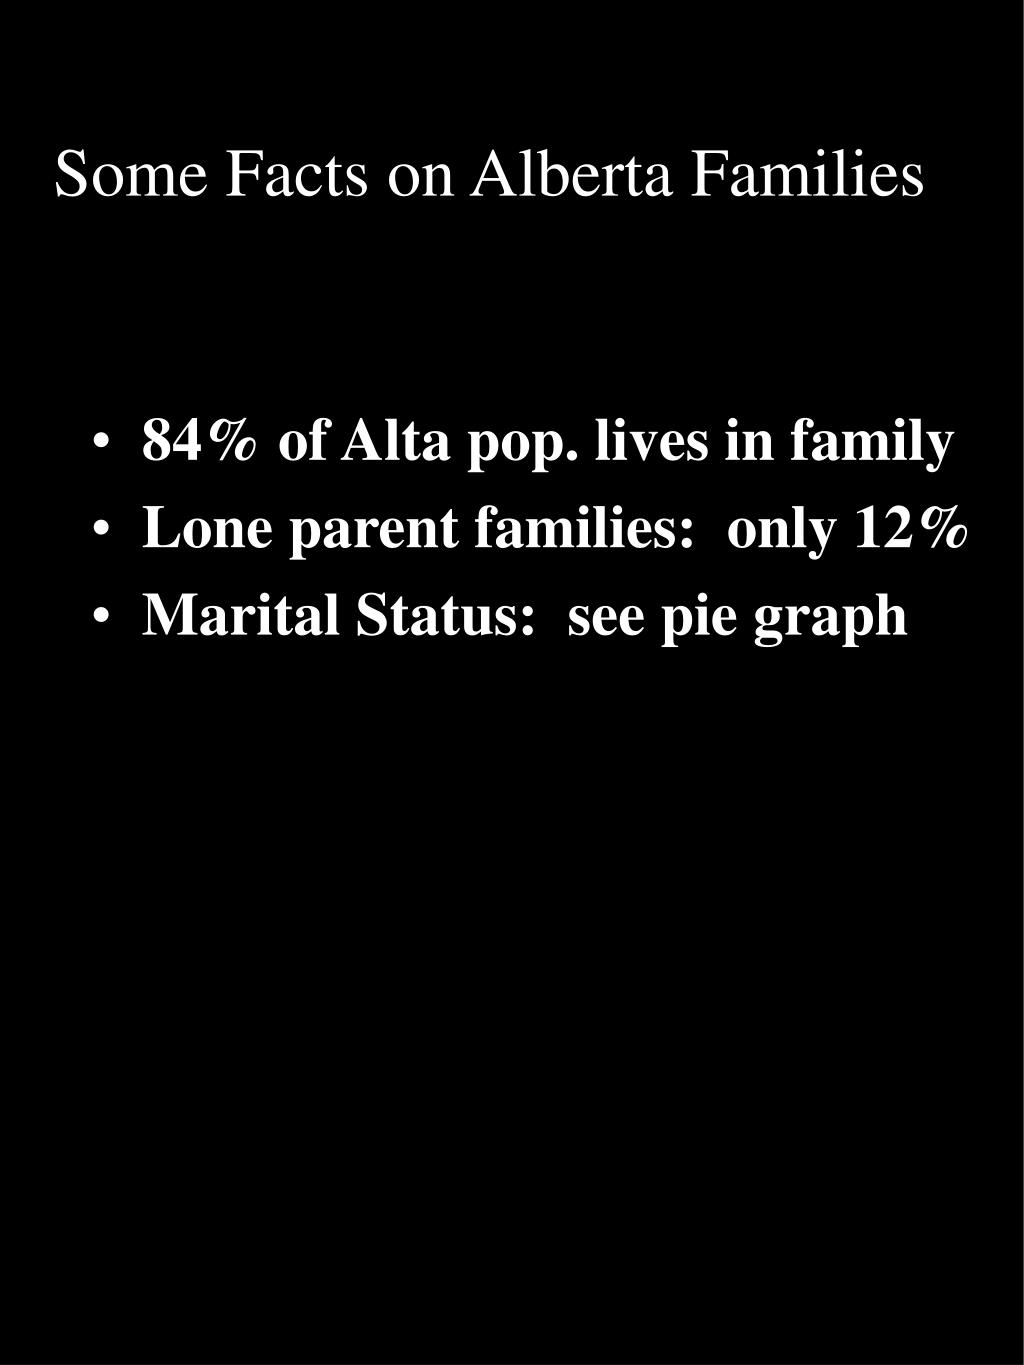 Some Facts on Alberta Families